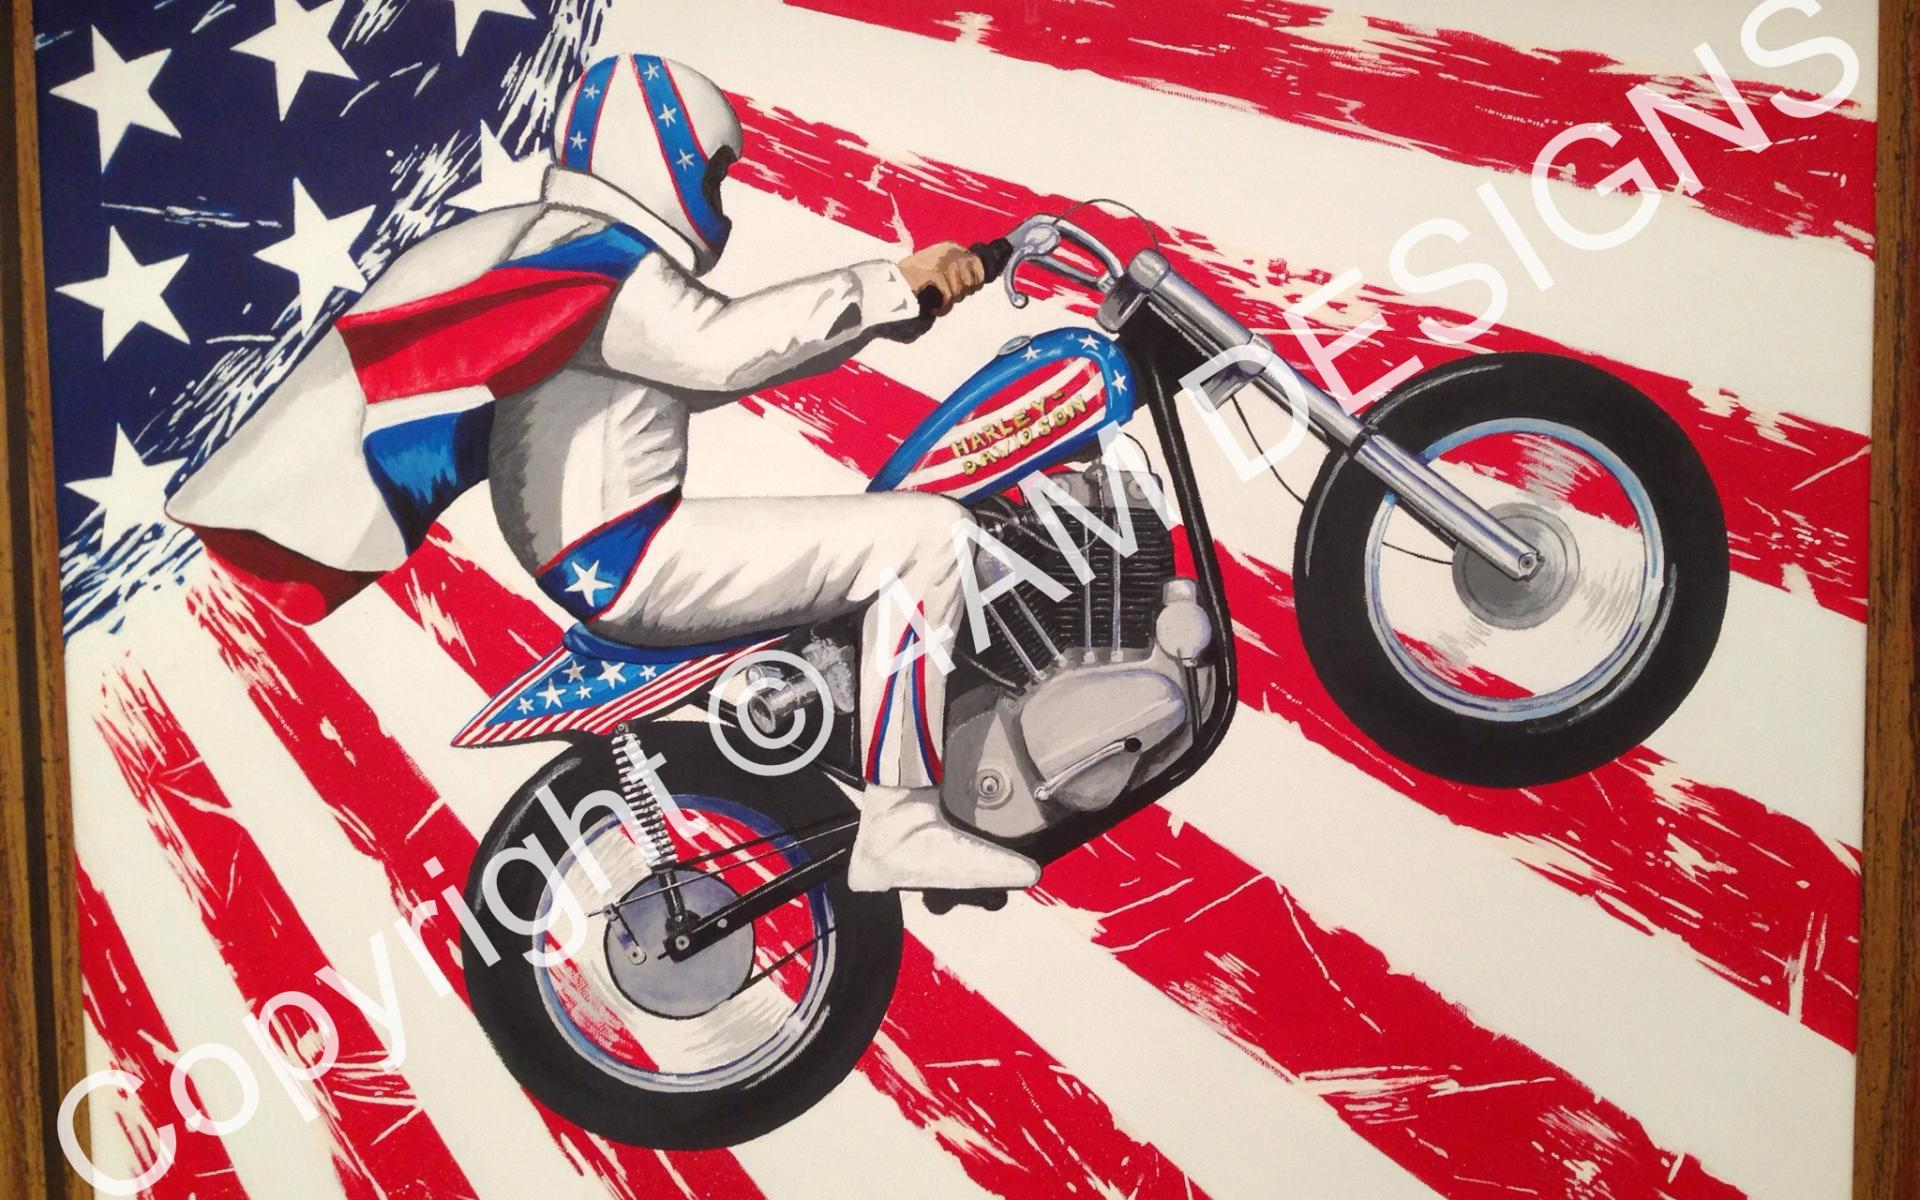 1920x1200 - Evel Knievel Wallpapers 27